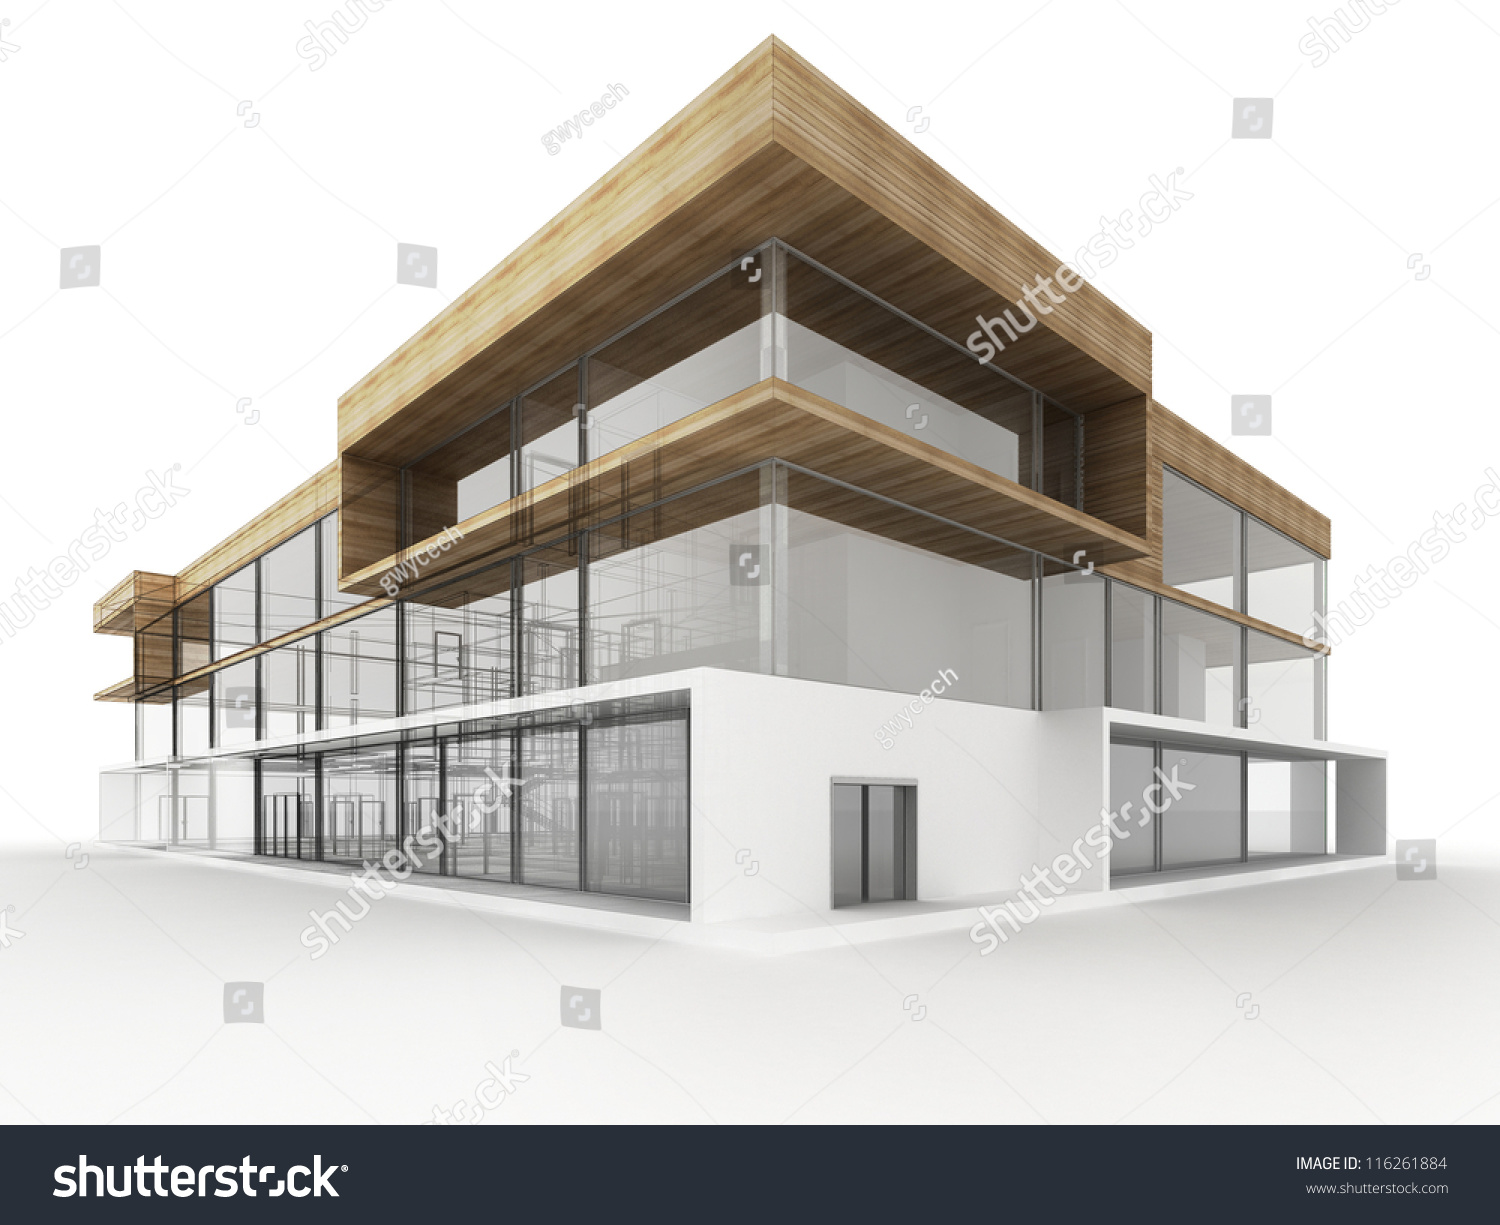 Design modern office building architects designers stock for Exterior design office buildings